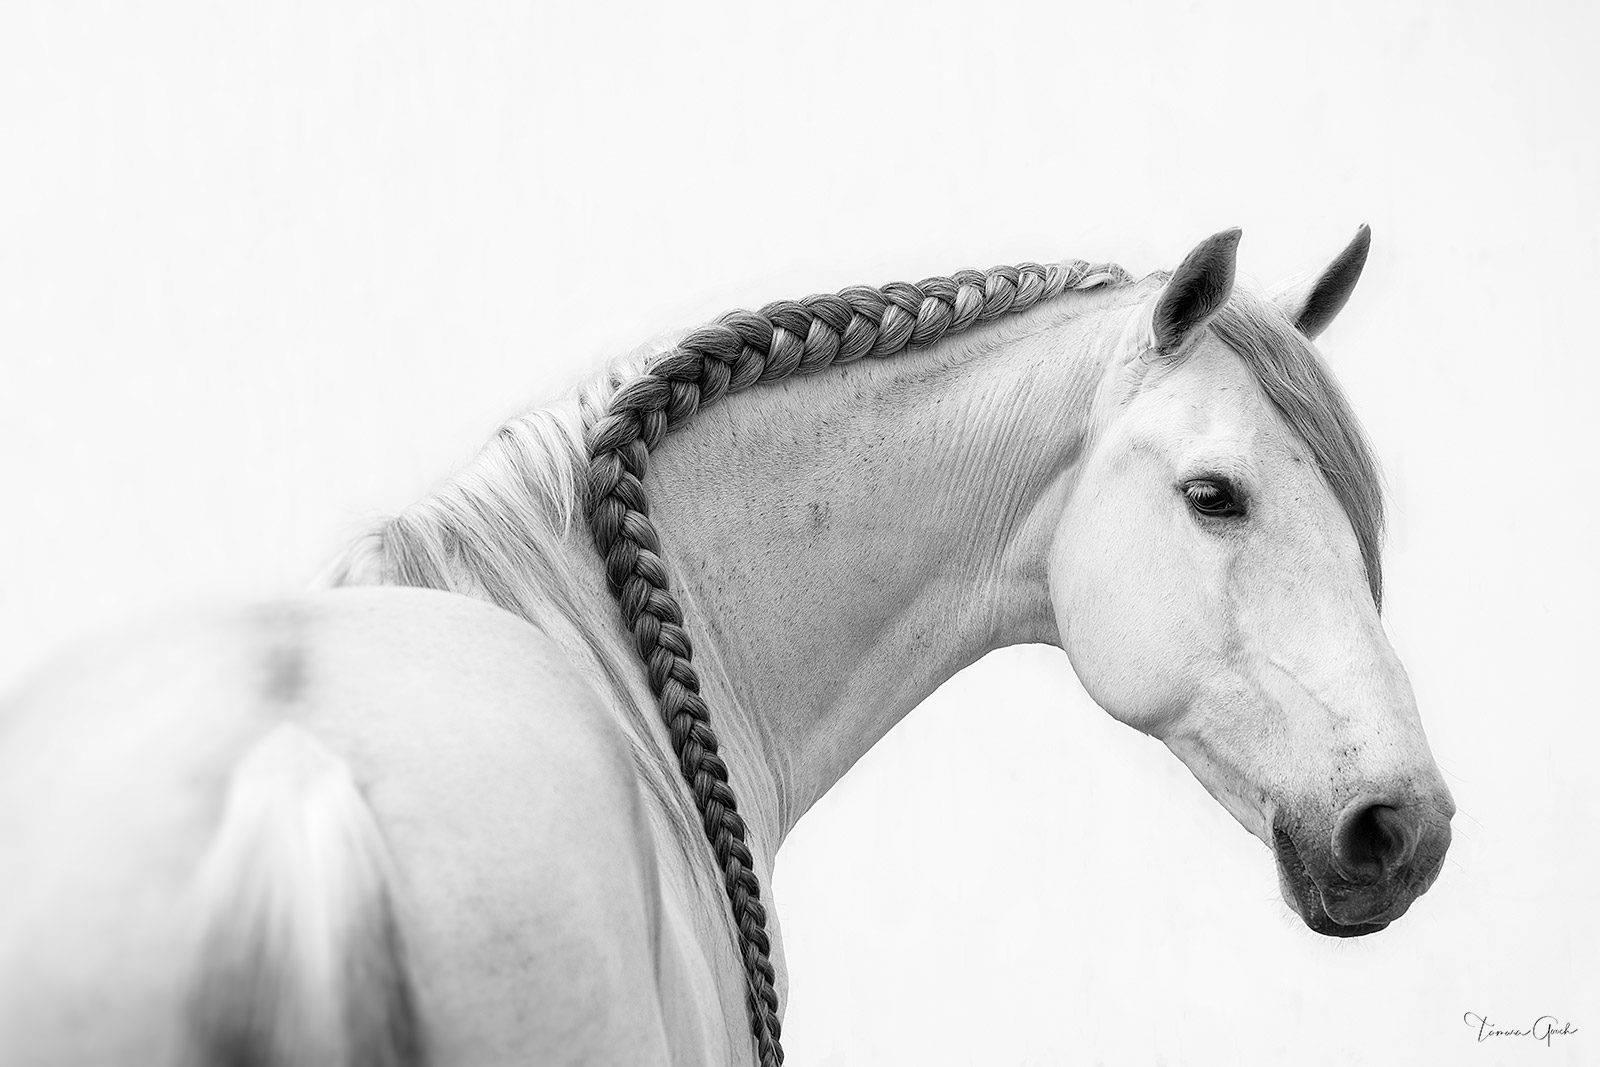 Warlander horse photo print for sale in black and white.